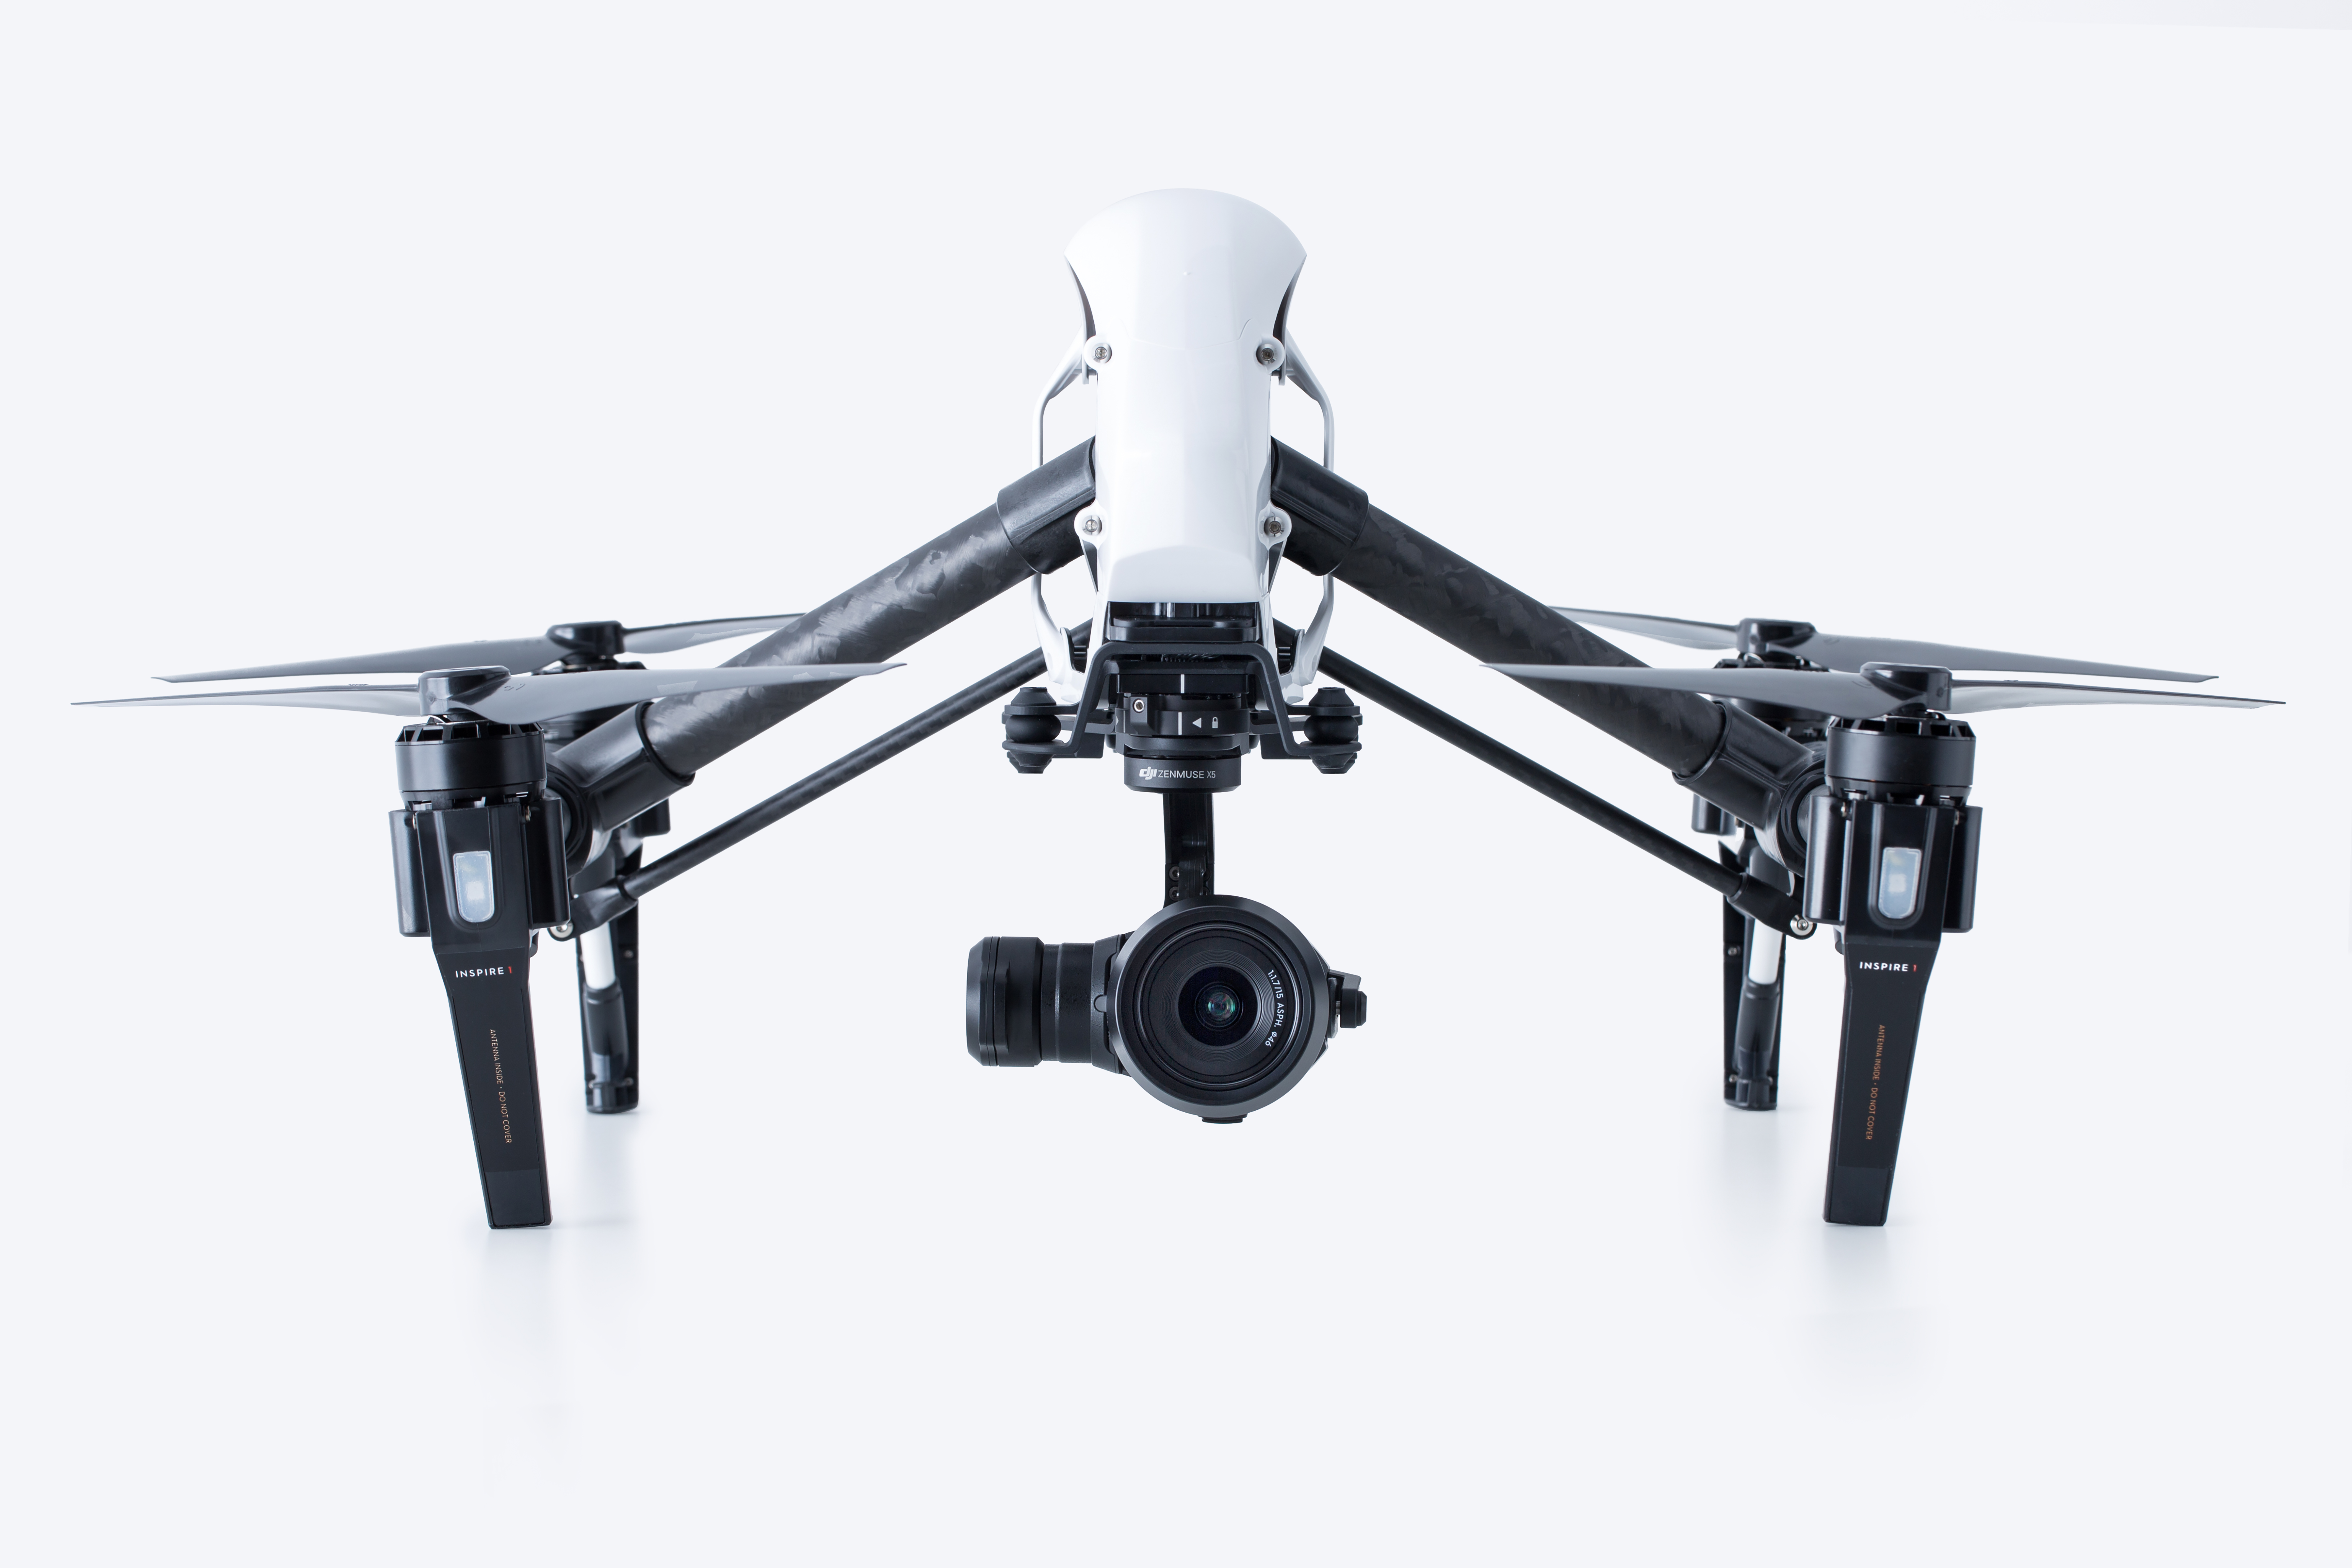 Chinese drone maker DJI offers a range of amateur and professional models, including this Inspire 1 equipped with a high-end Zenmuse X5 camera system.